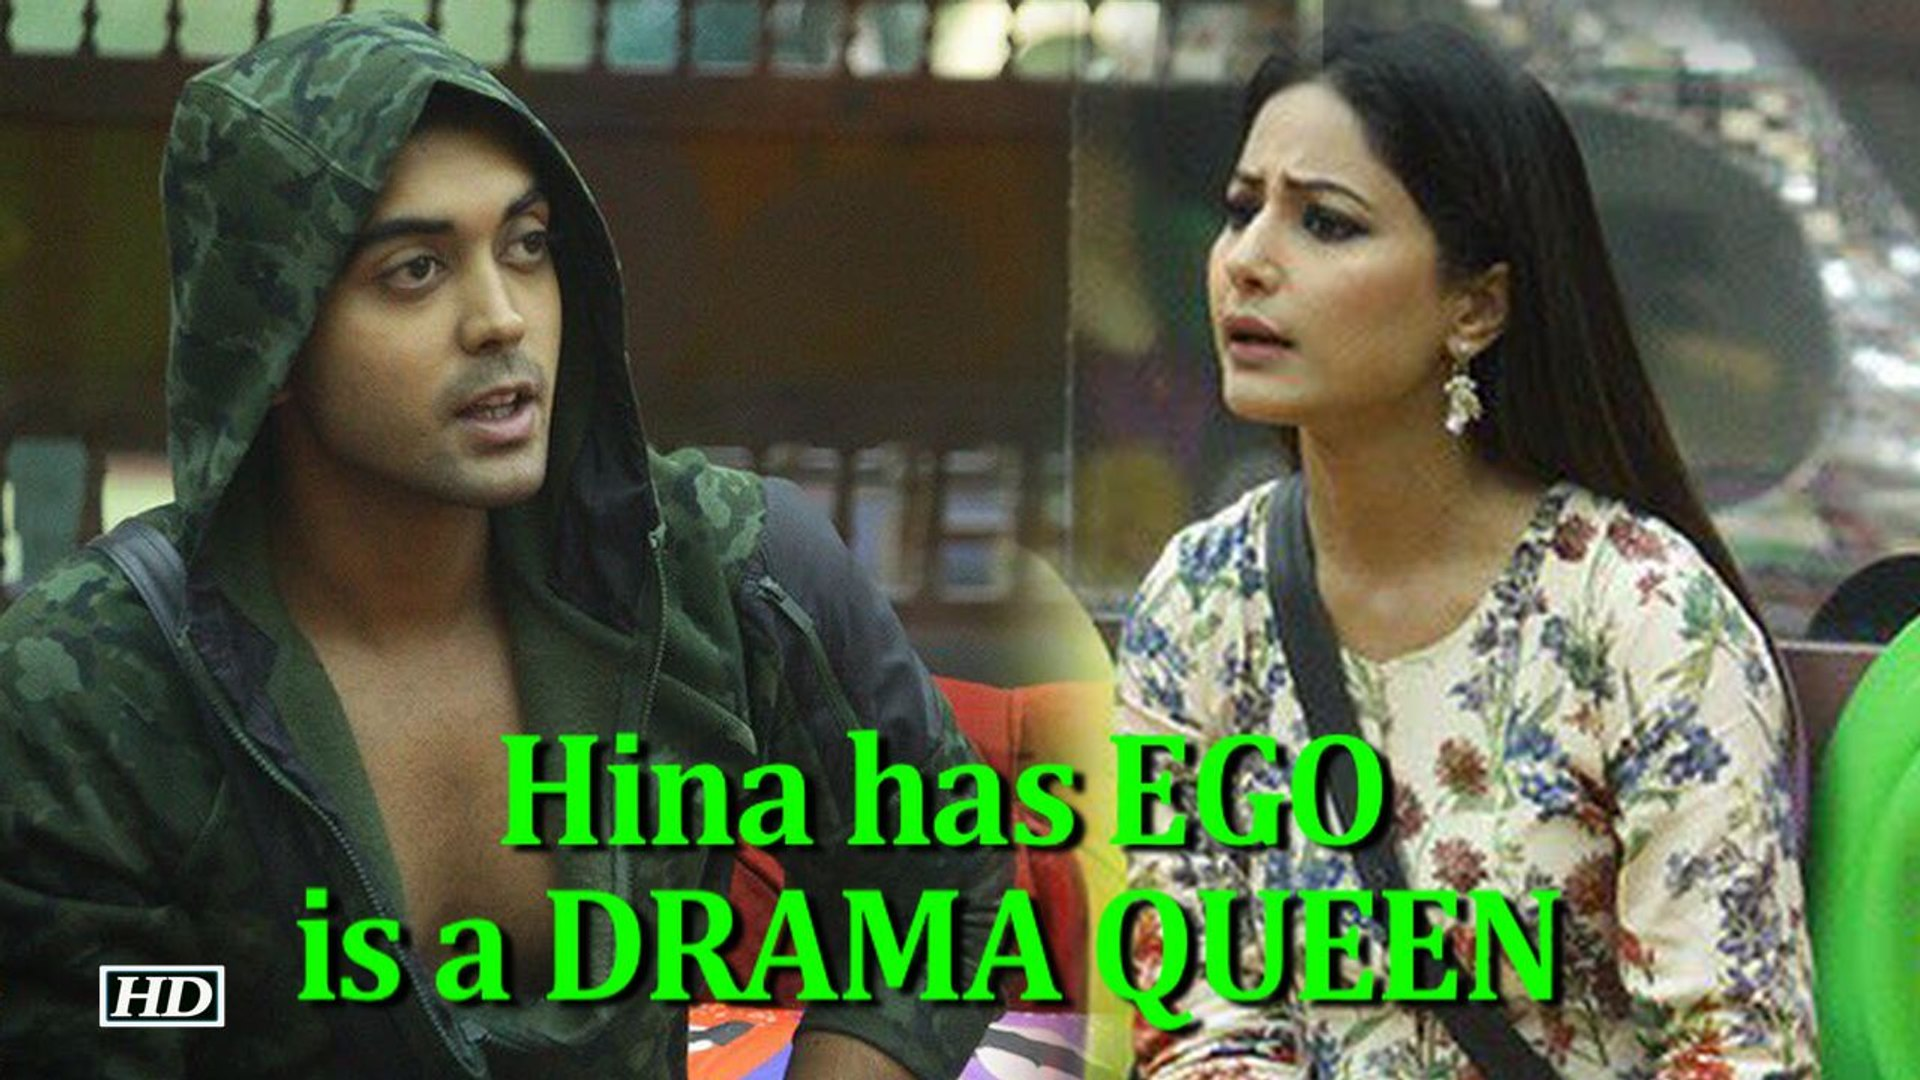 Bigg Boss 11 | Hina is a DRAMA QUEEN and has EGO: Luv